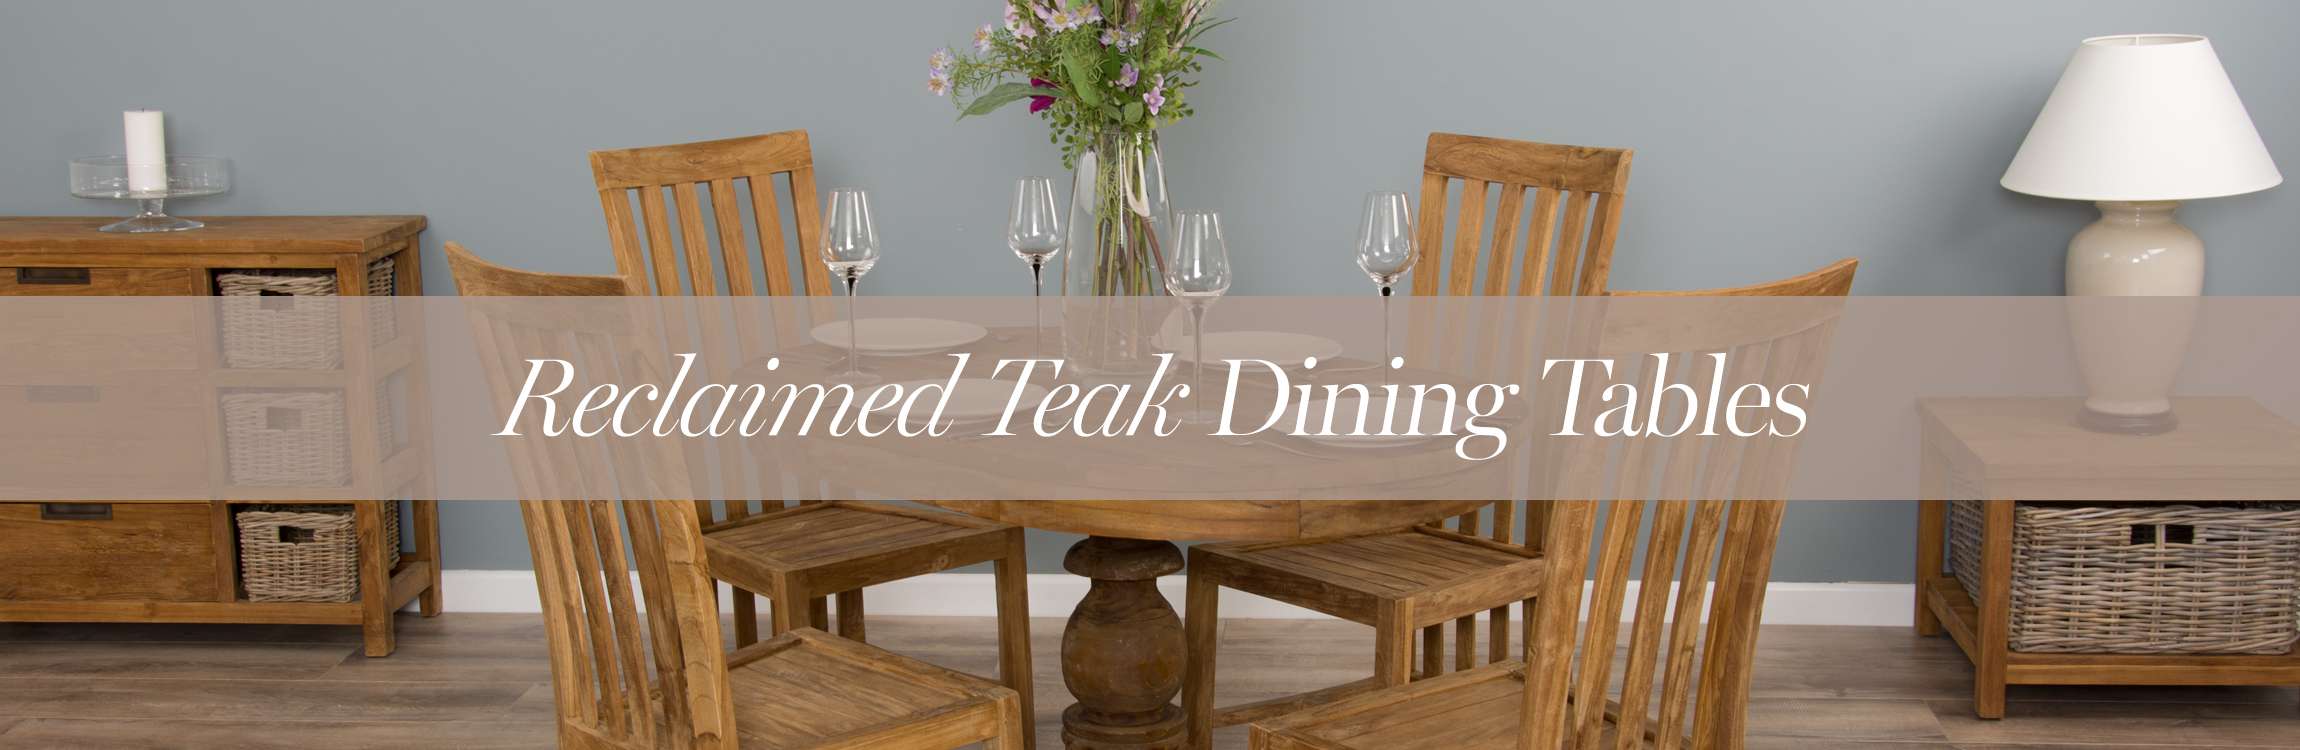 Reclaimed Teak Dining Tables